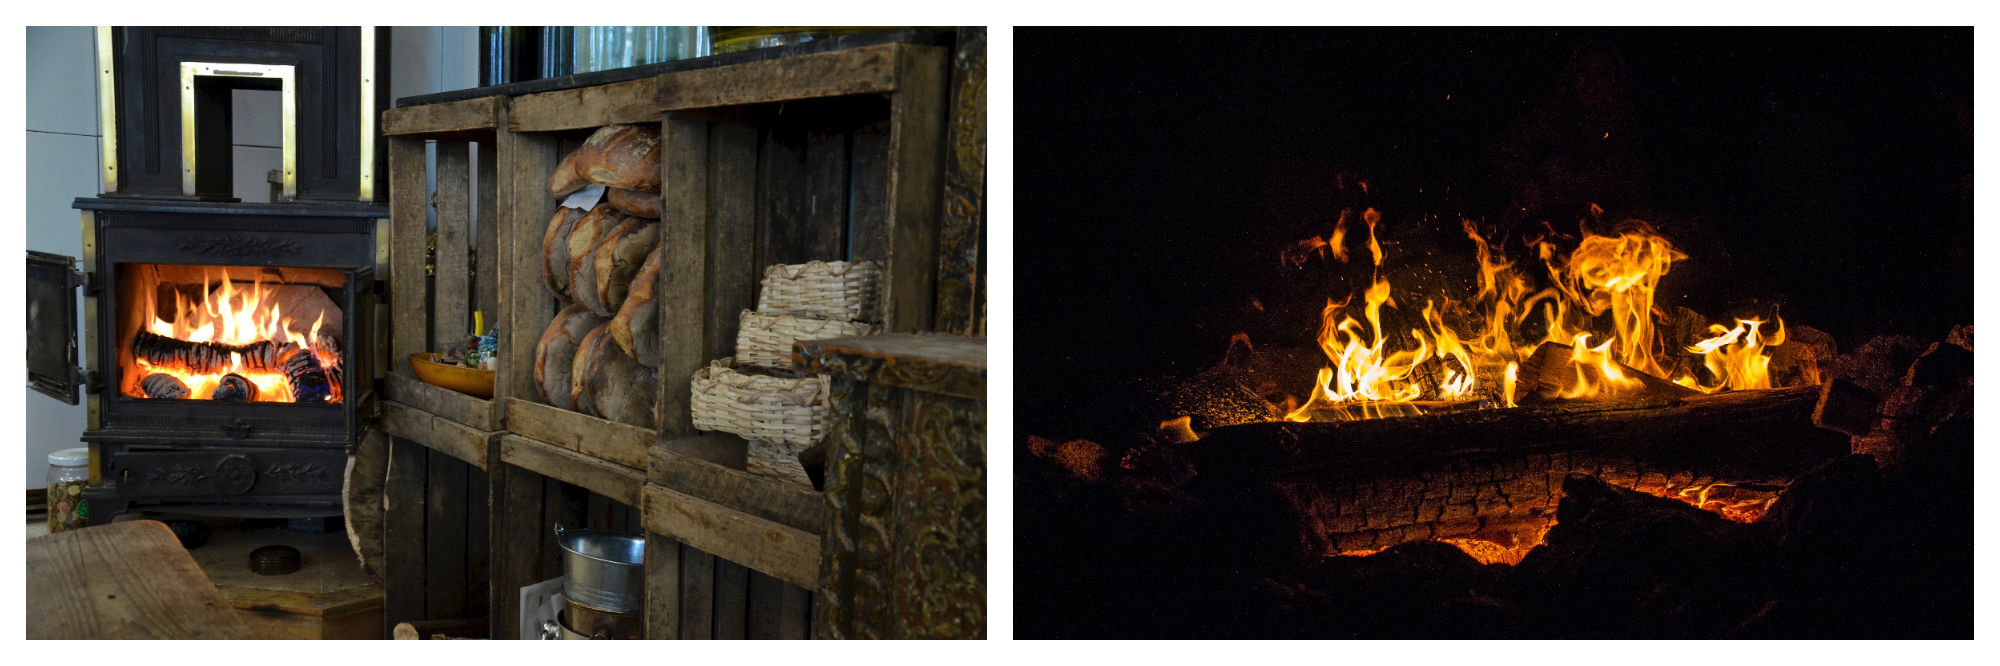 On left: The metal hearth of La Cave de l'Insolite is bright and cozy, offering diners a charming atmosphere in this restaurant located on the rue de la Folie Méricourt in Paris. On right: A fire roars in a chimney, leaving the orange glow of embers as flames lick the logs.